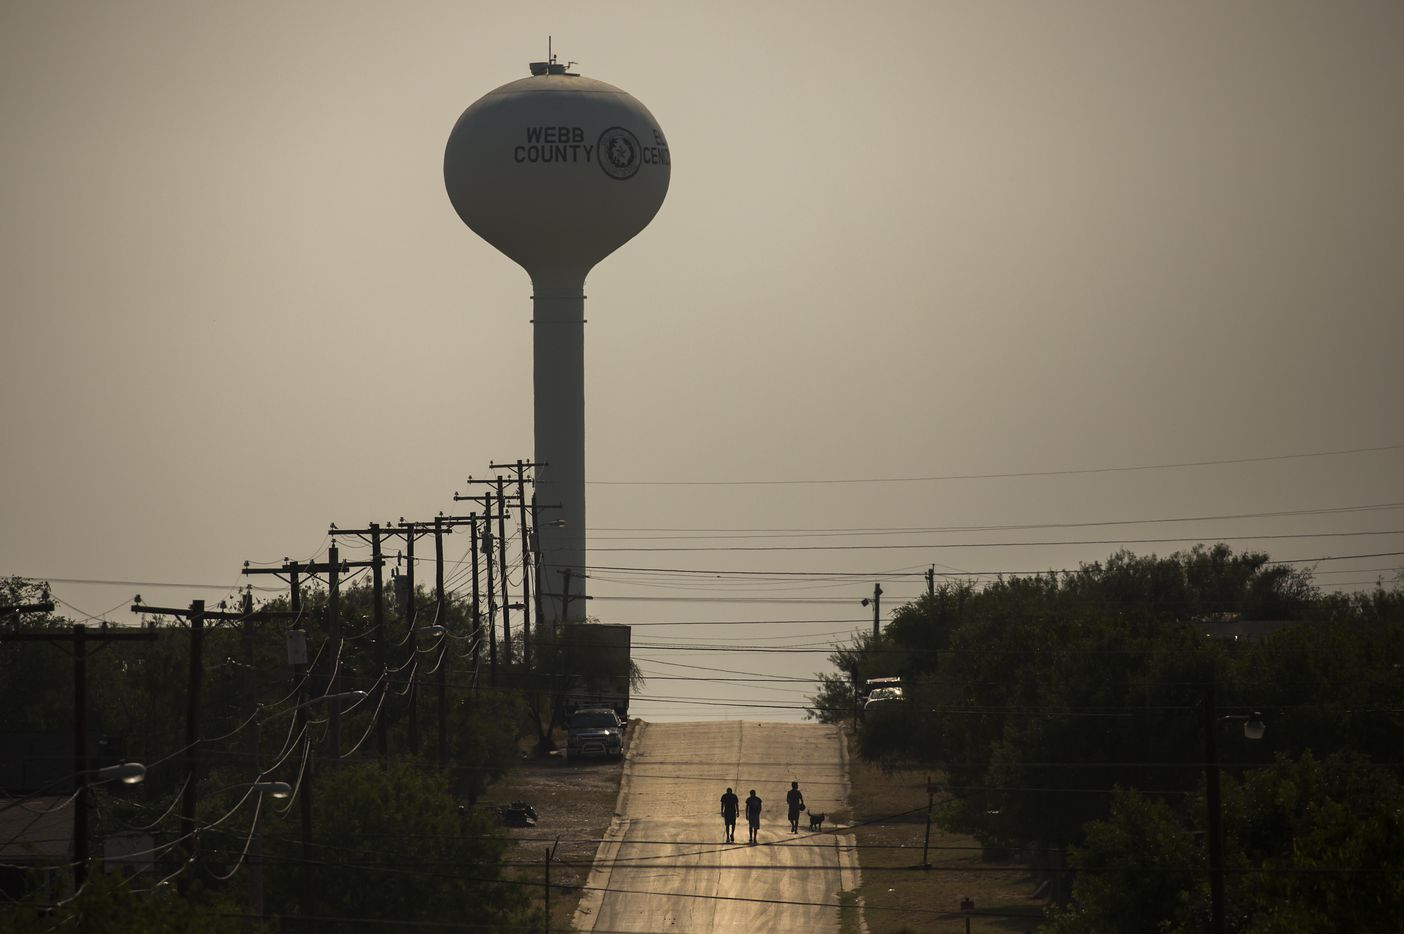 A group of young men walk along Valdez Street toward the town's water tower on May 10, 2017, in El Cenizo, Texas.